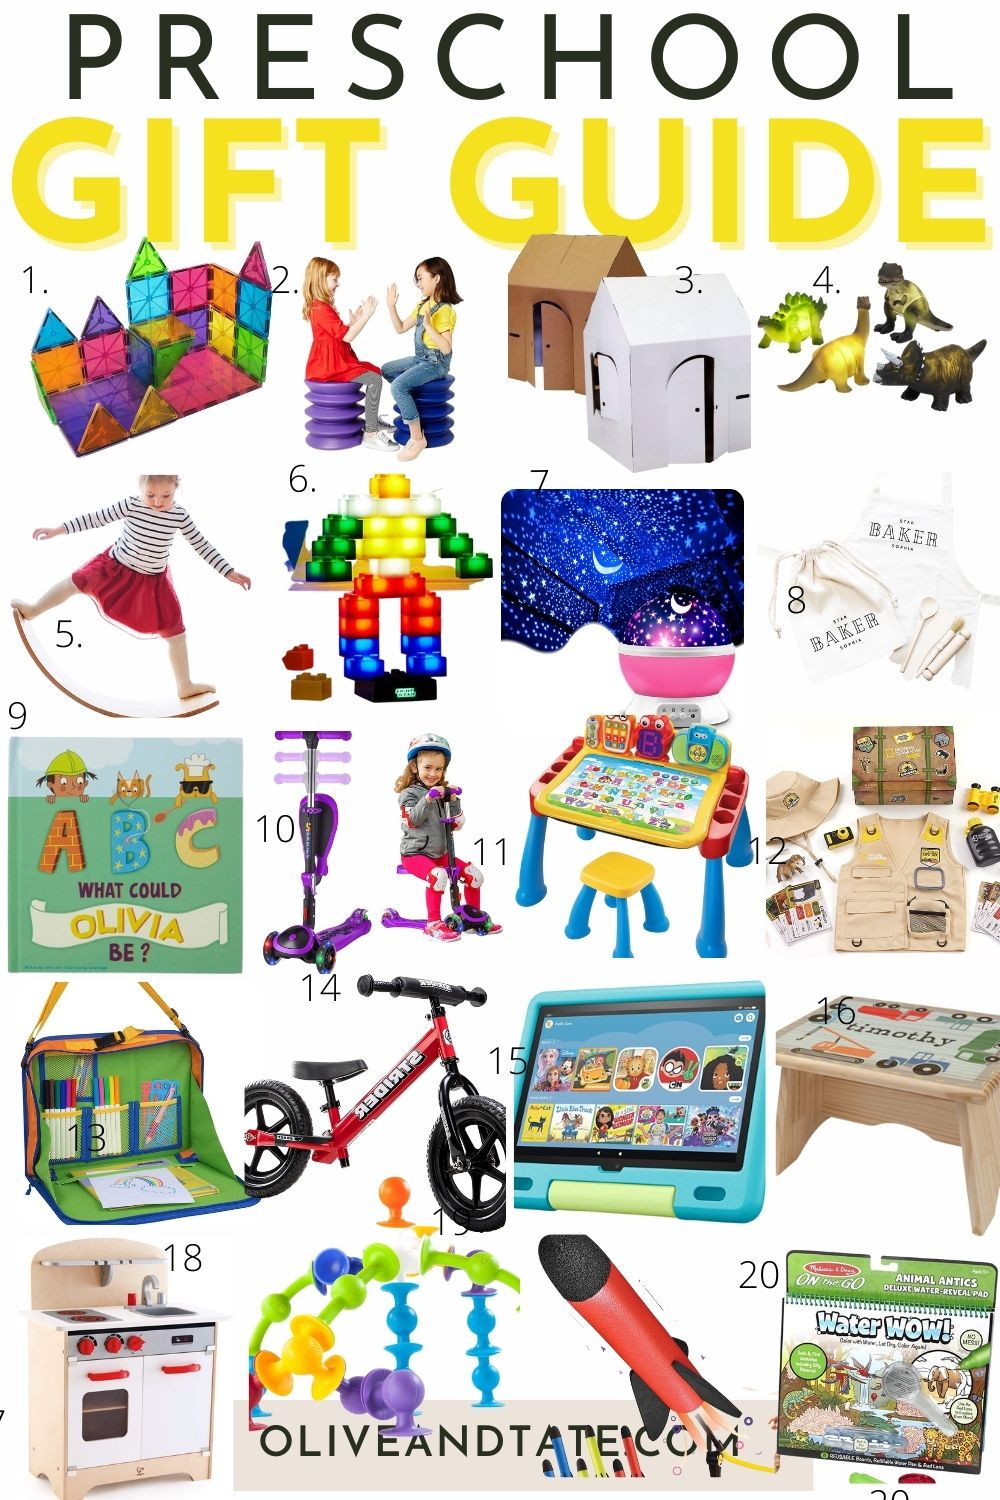 The Best Gifts for Preschoolers 2021